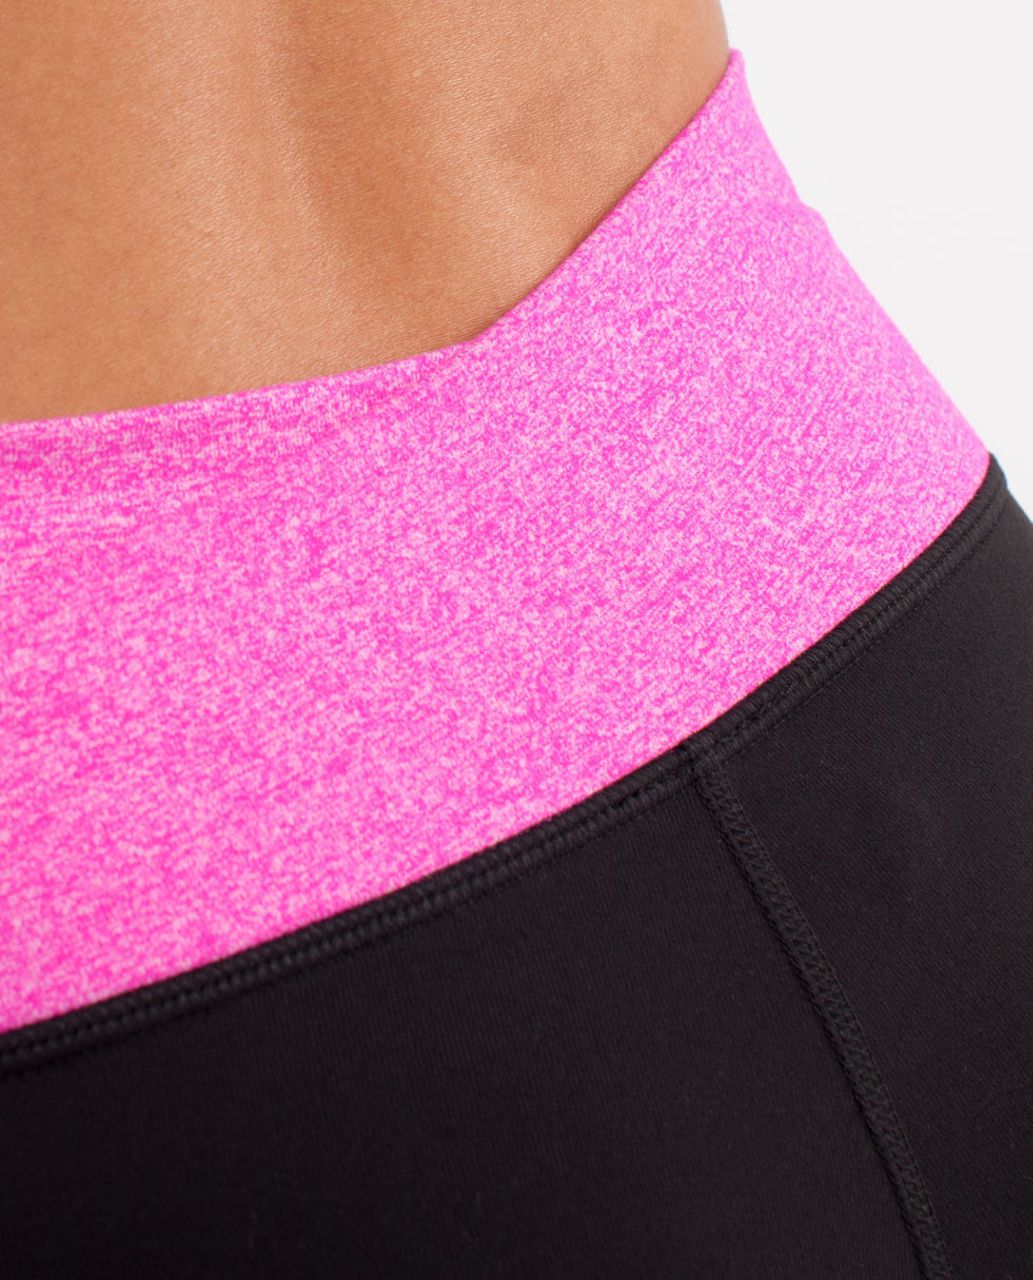 Lululemon Astro Pant (Tall) - Black /  Heathered Paris Pink